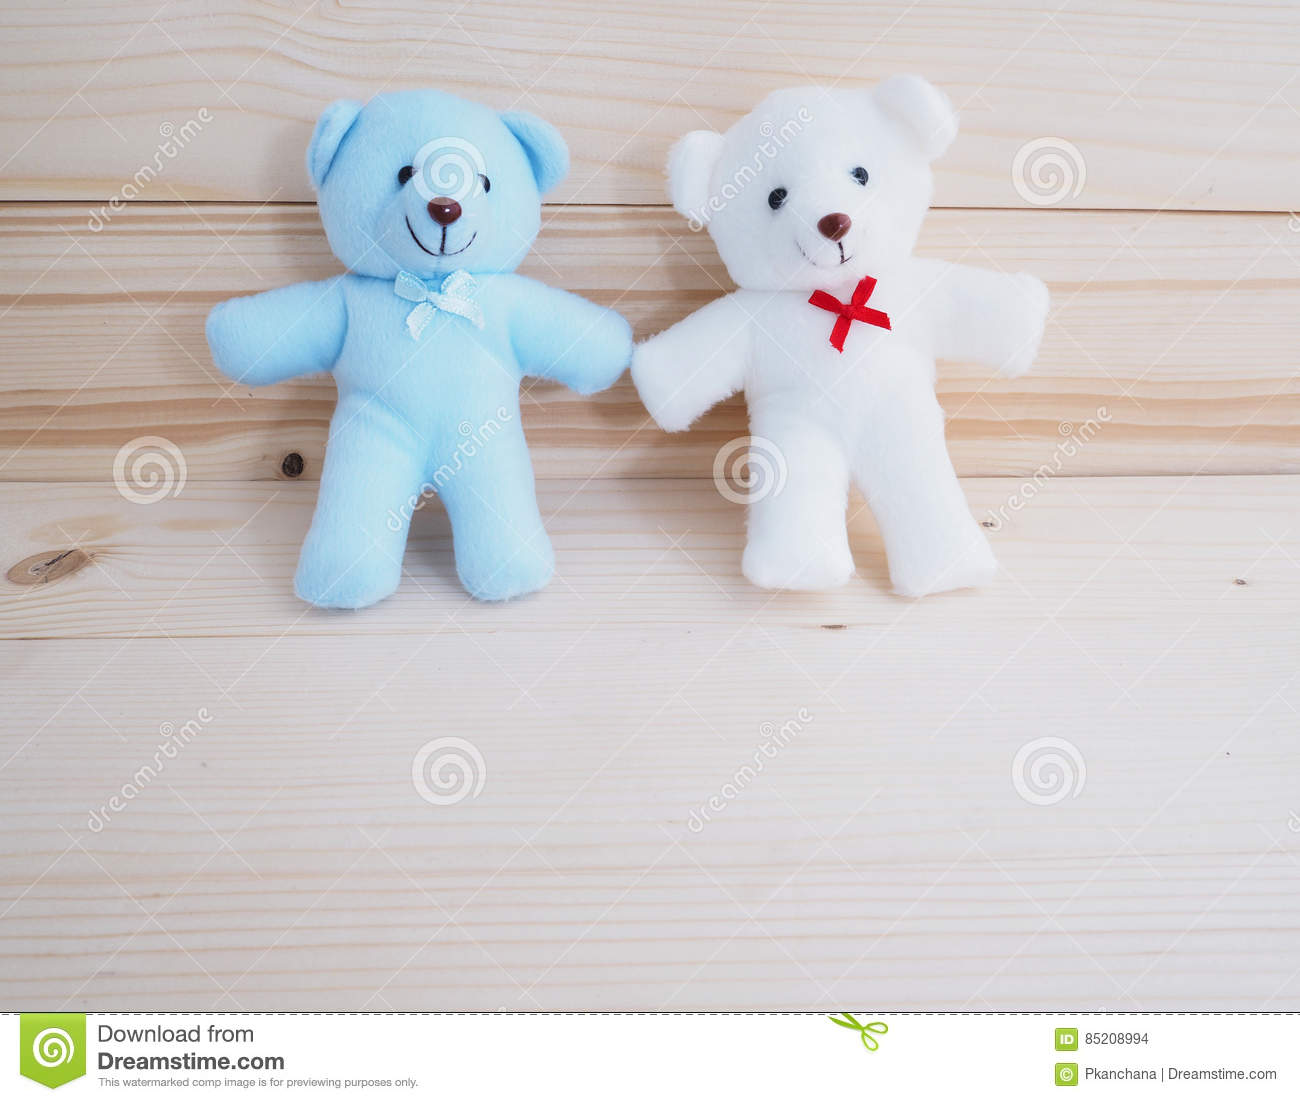 Blue and white toy teddy bear